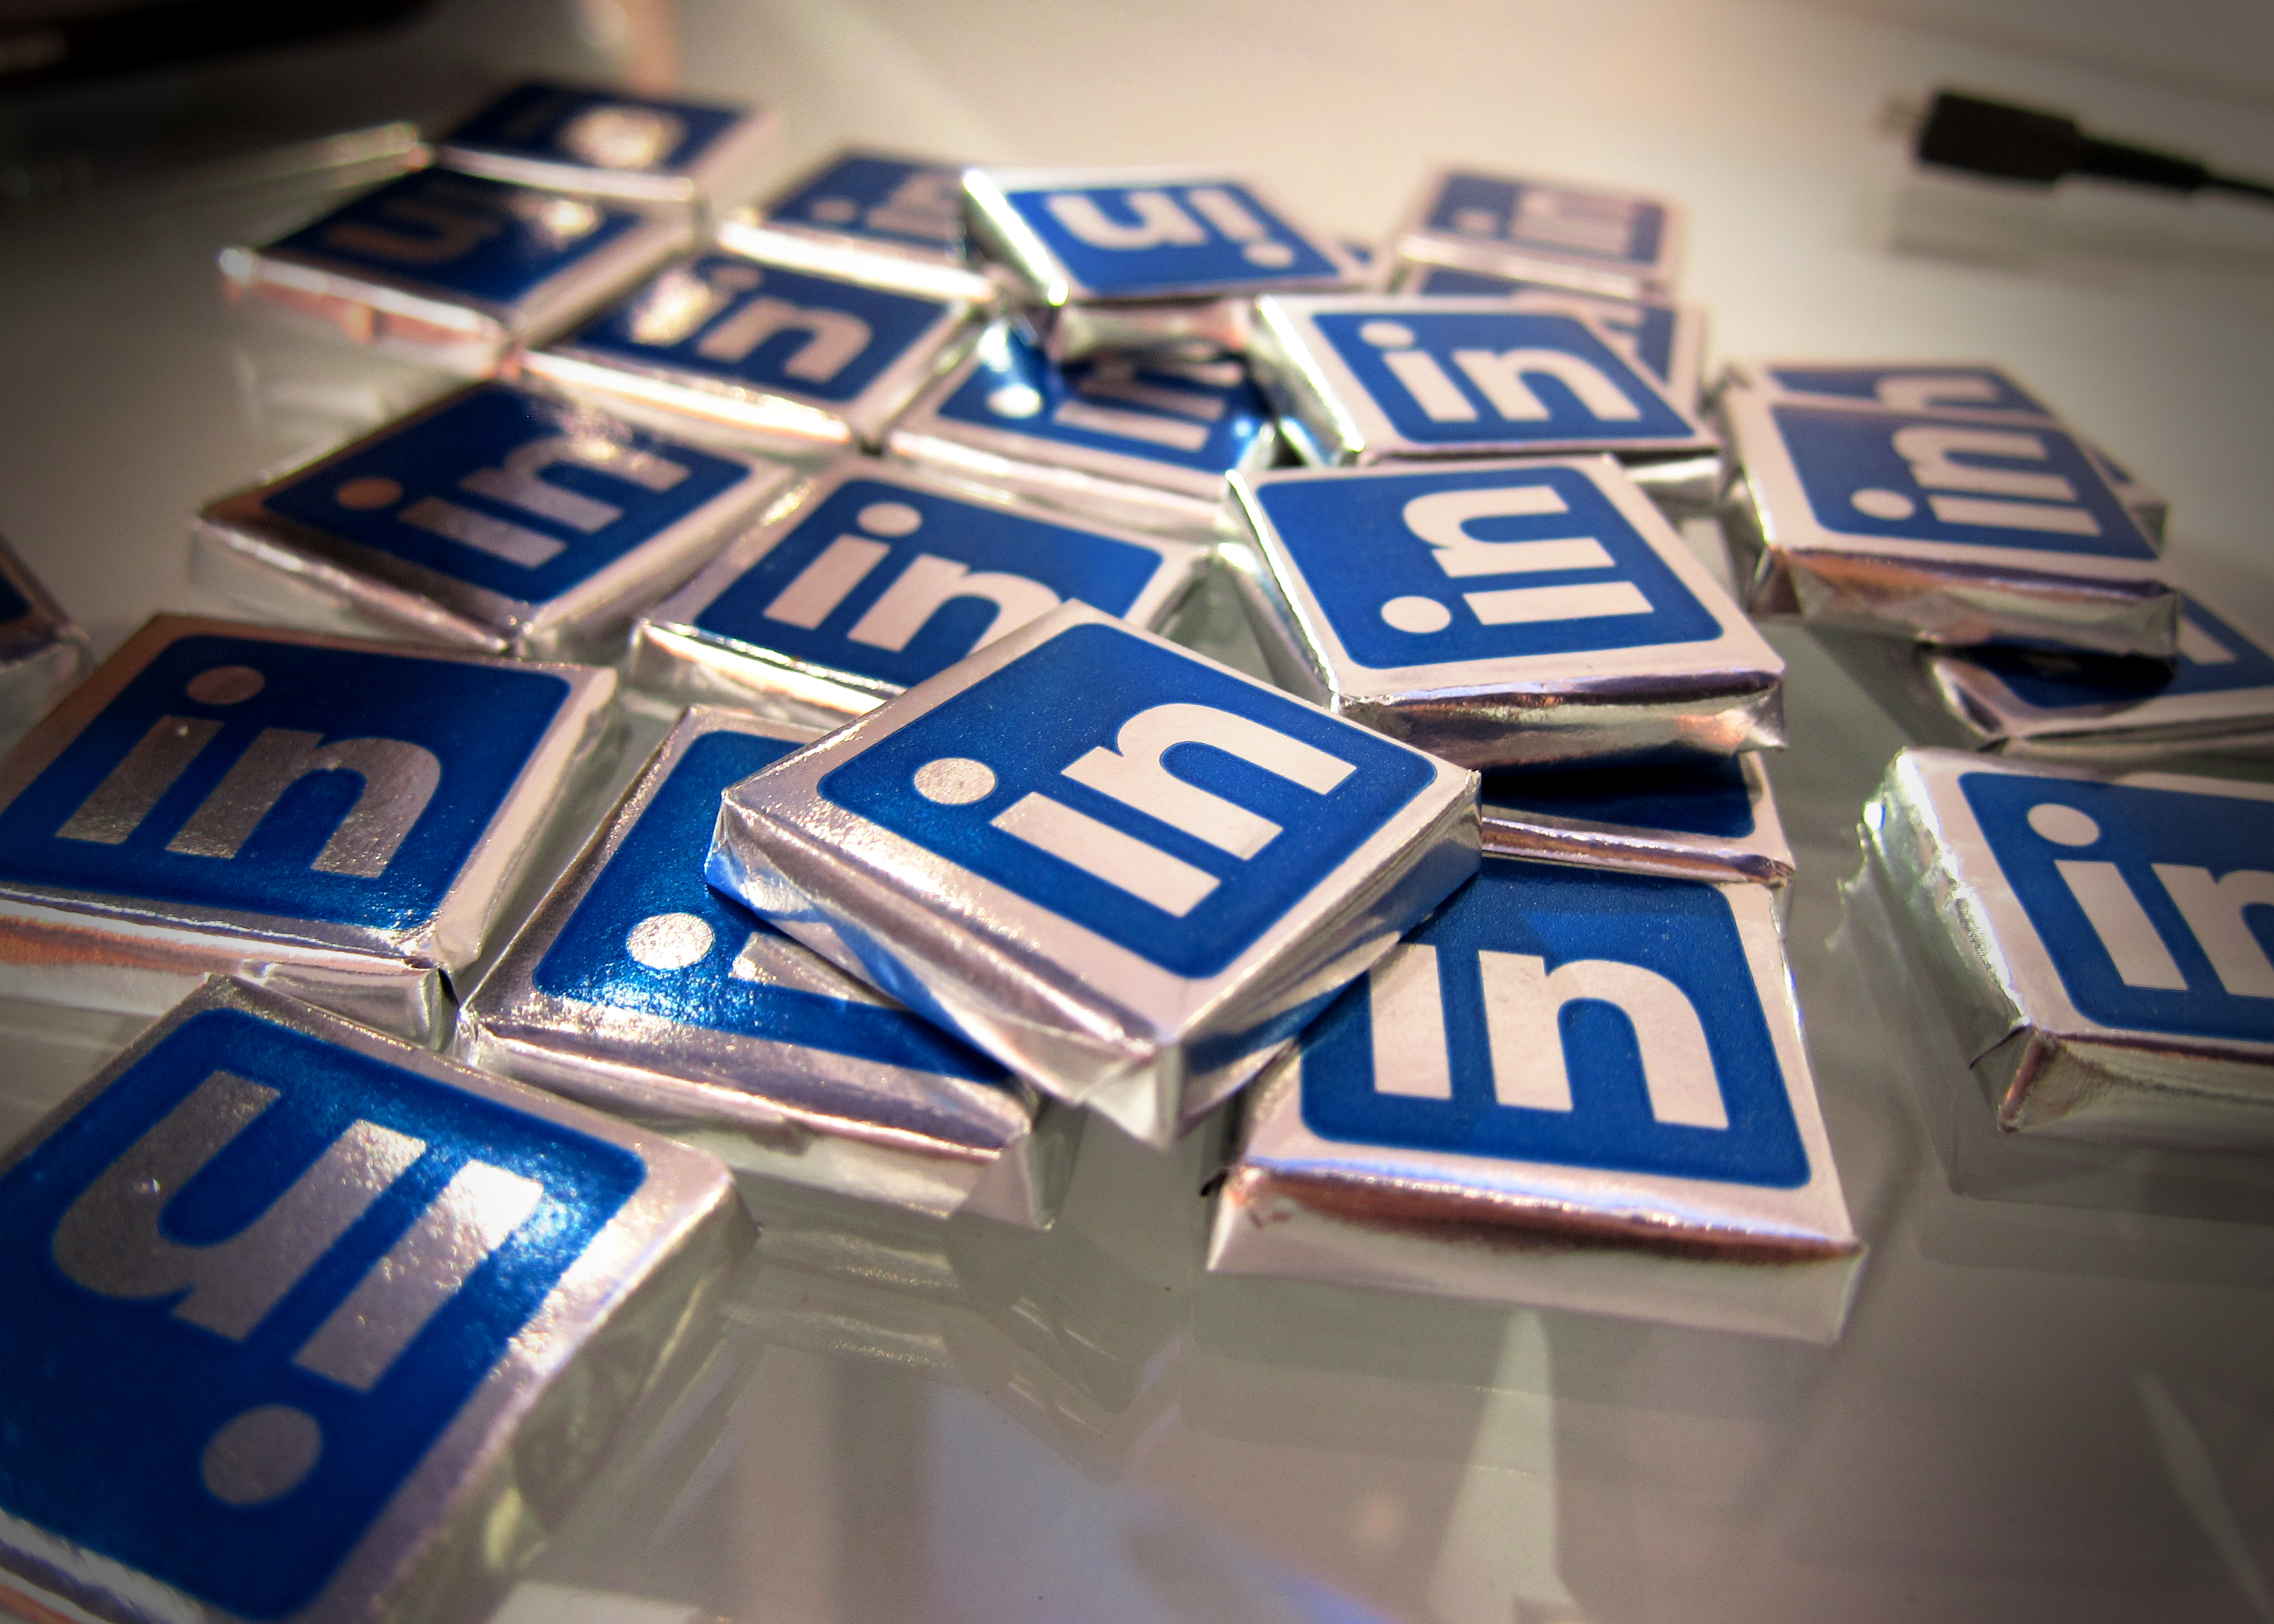 Why Bother With LinkedIn? Because Others in Your Industry Are!